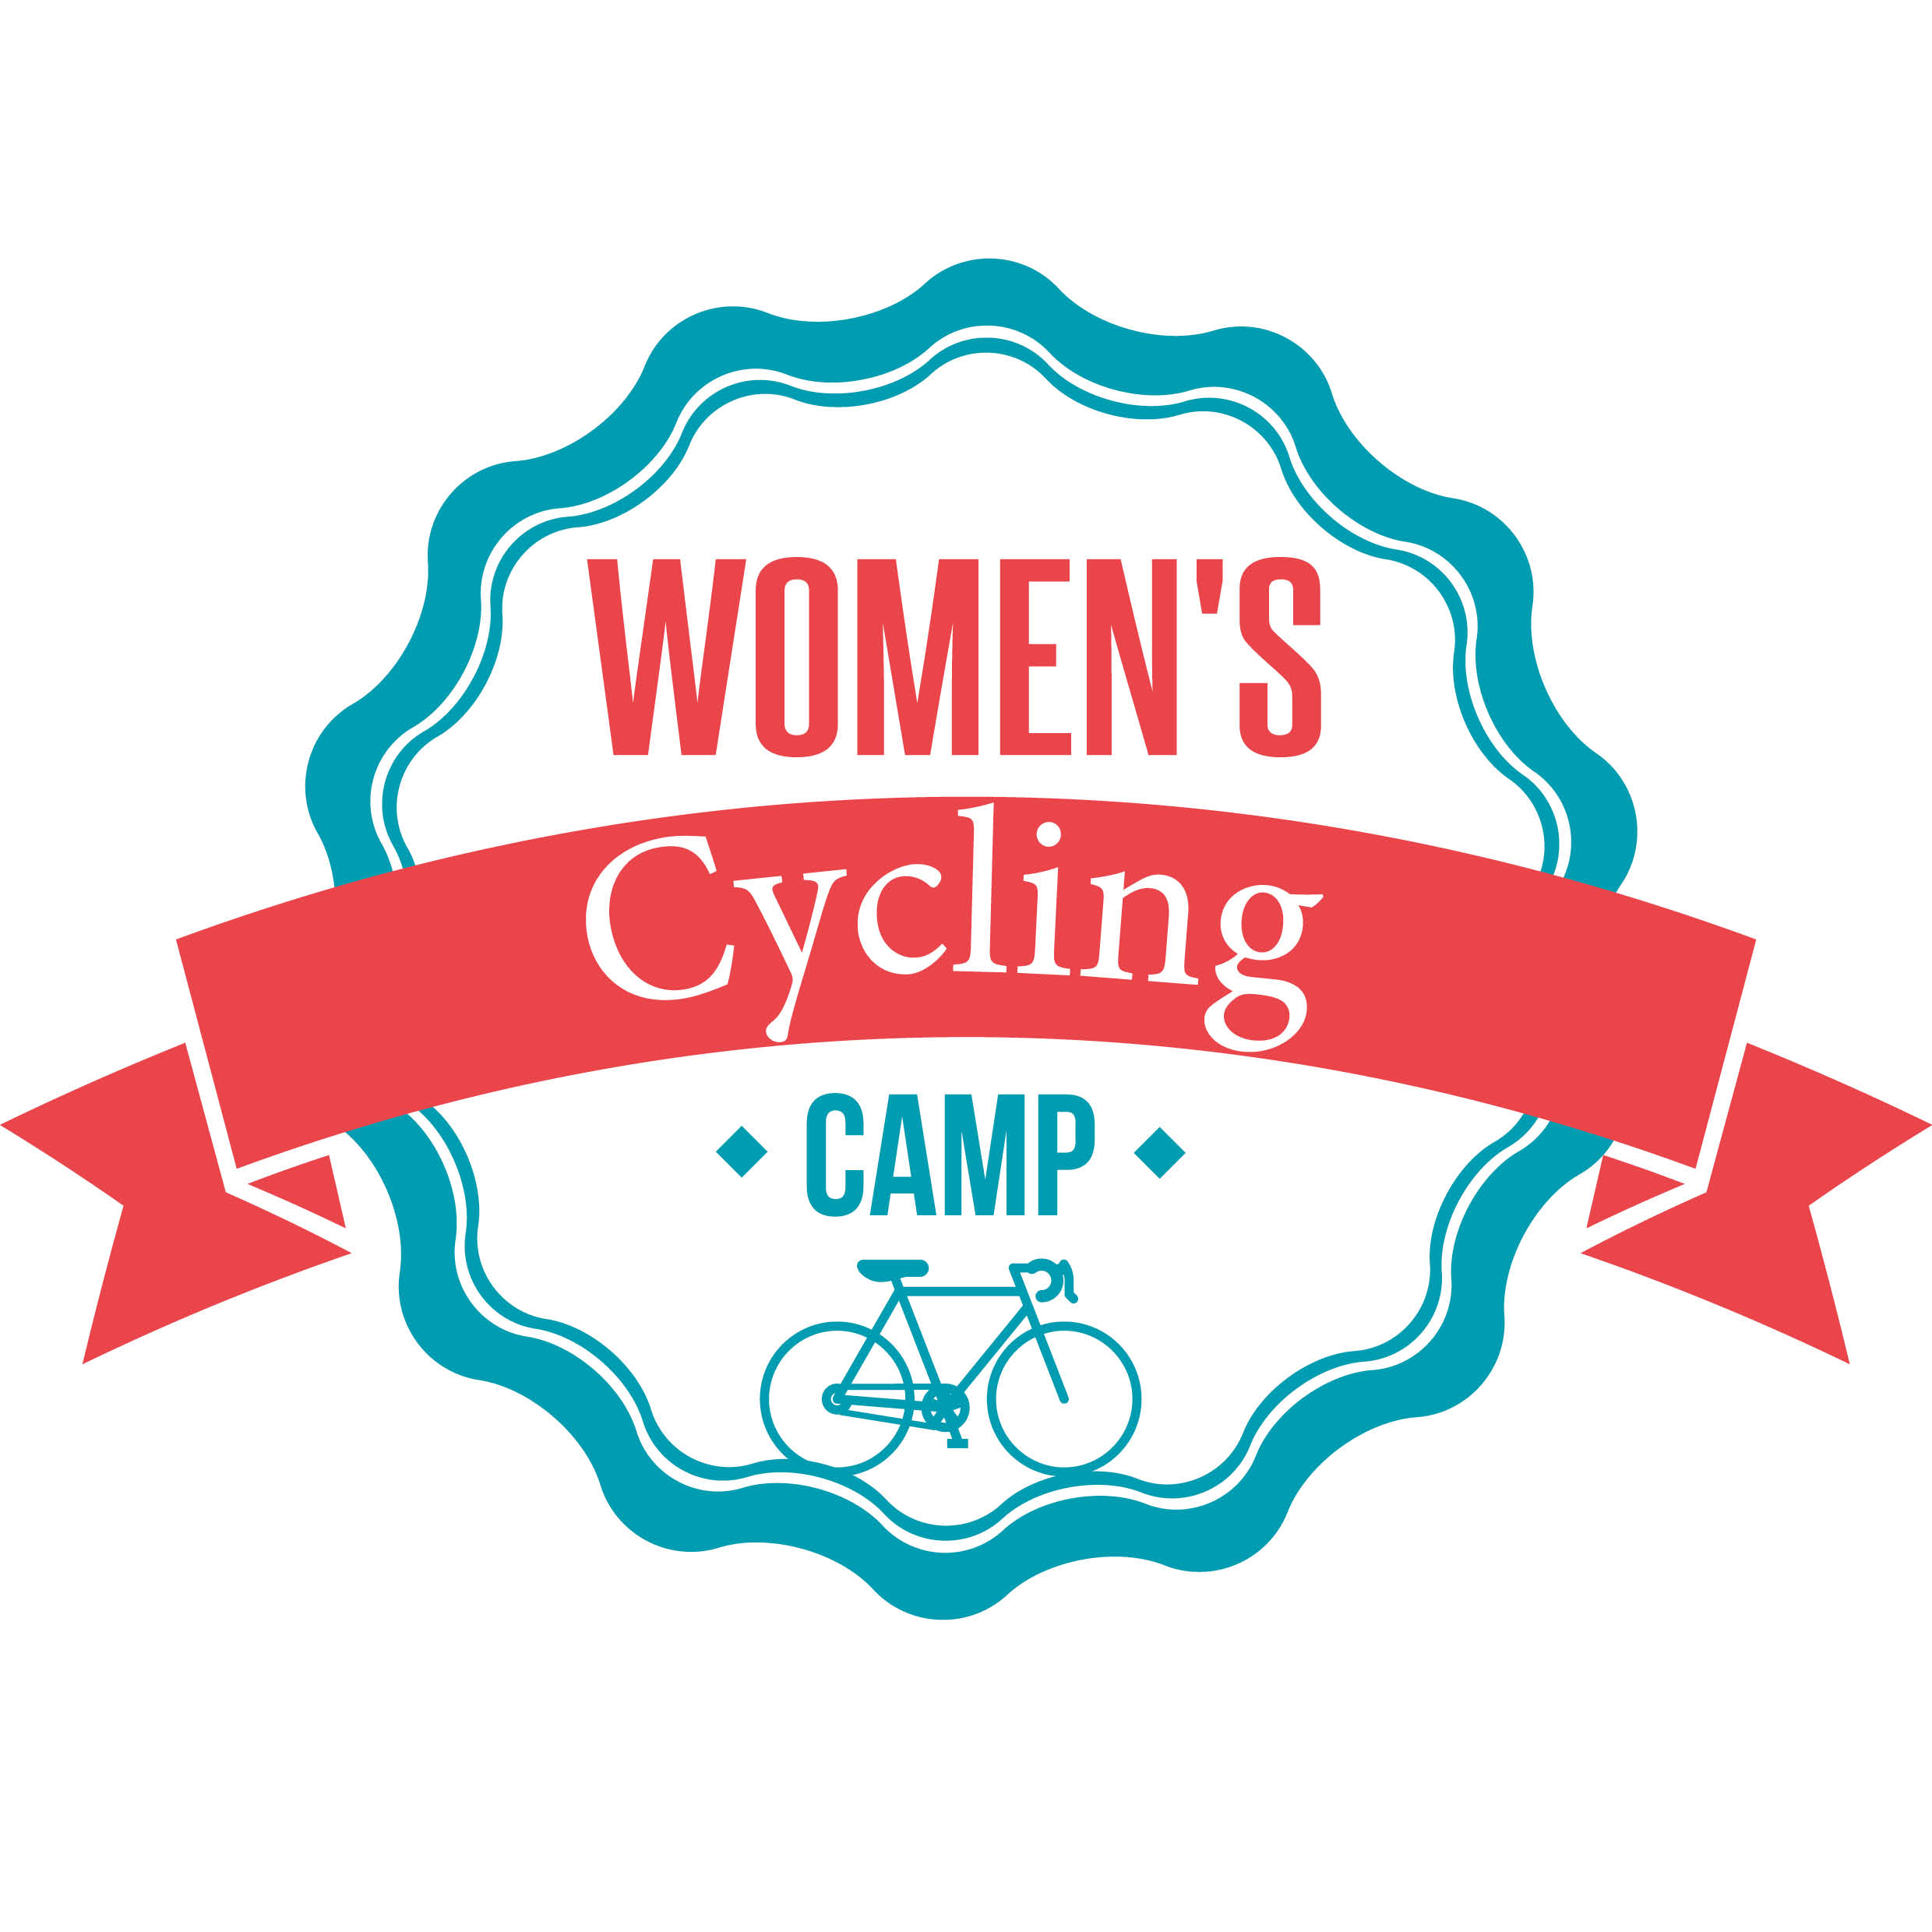 Women's Cycling Camp Logo